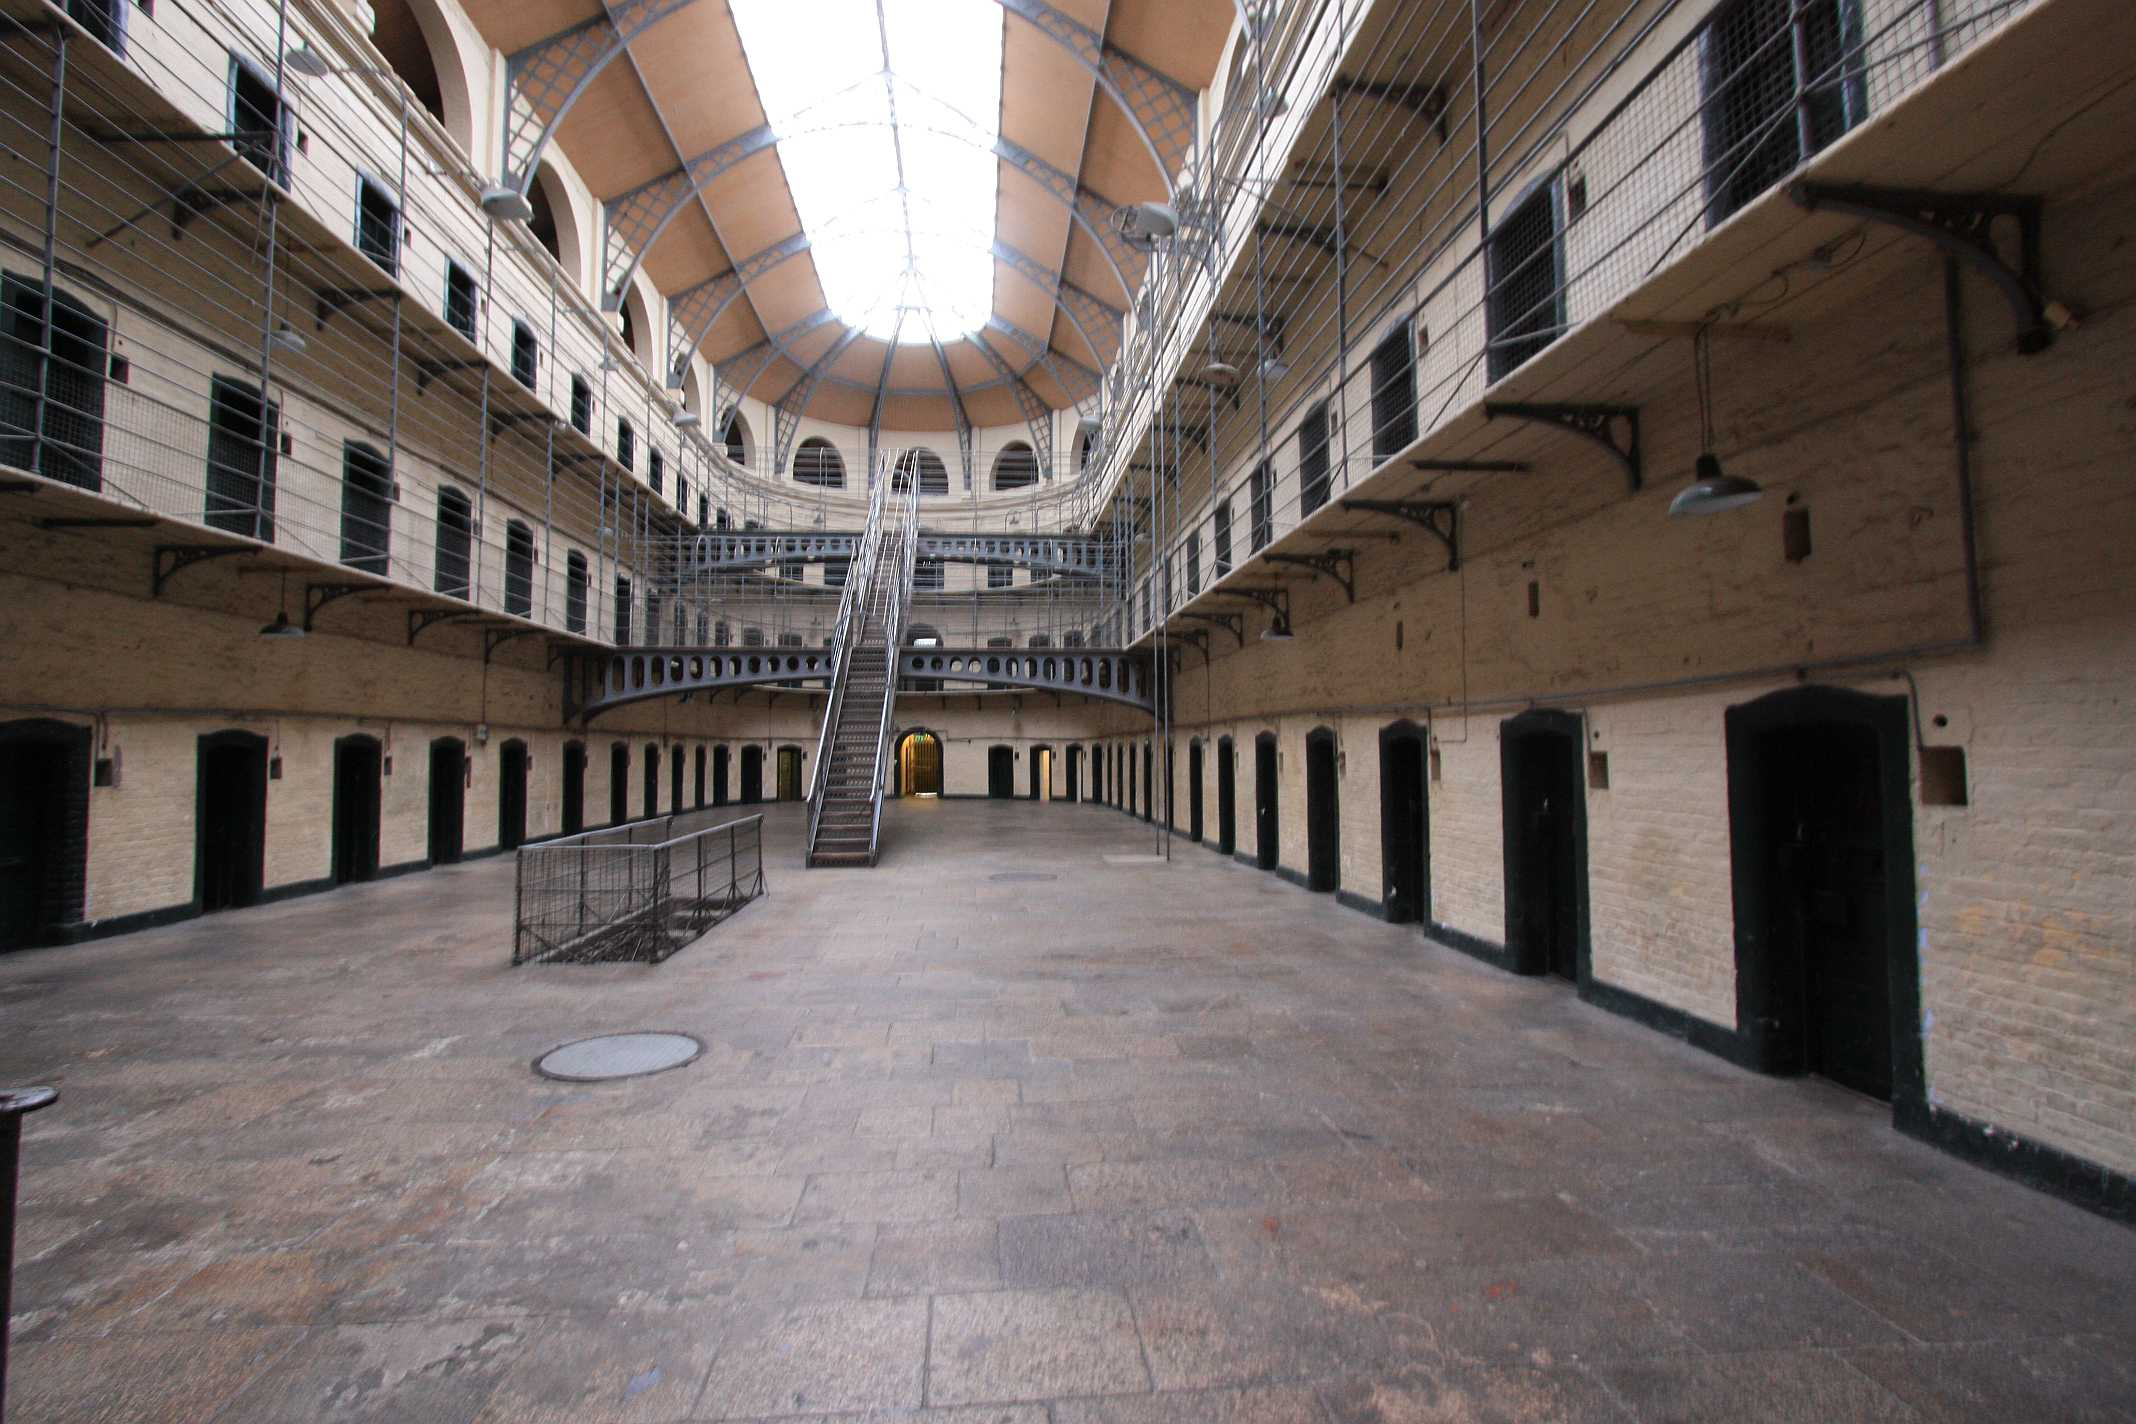 Dublin-Kilmainham-Jail-Hall-1